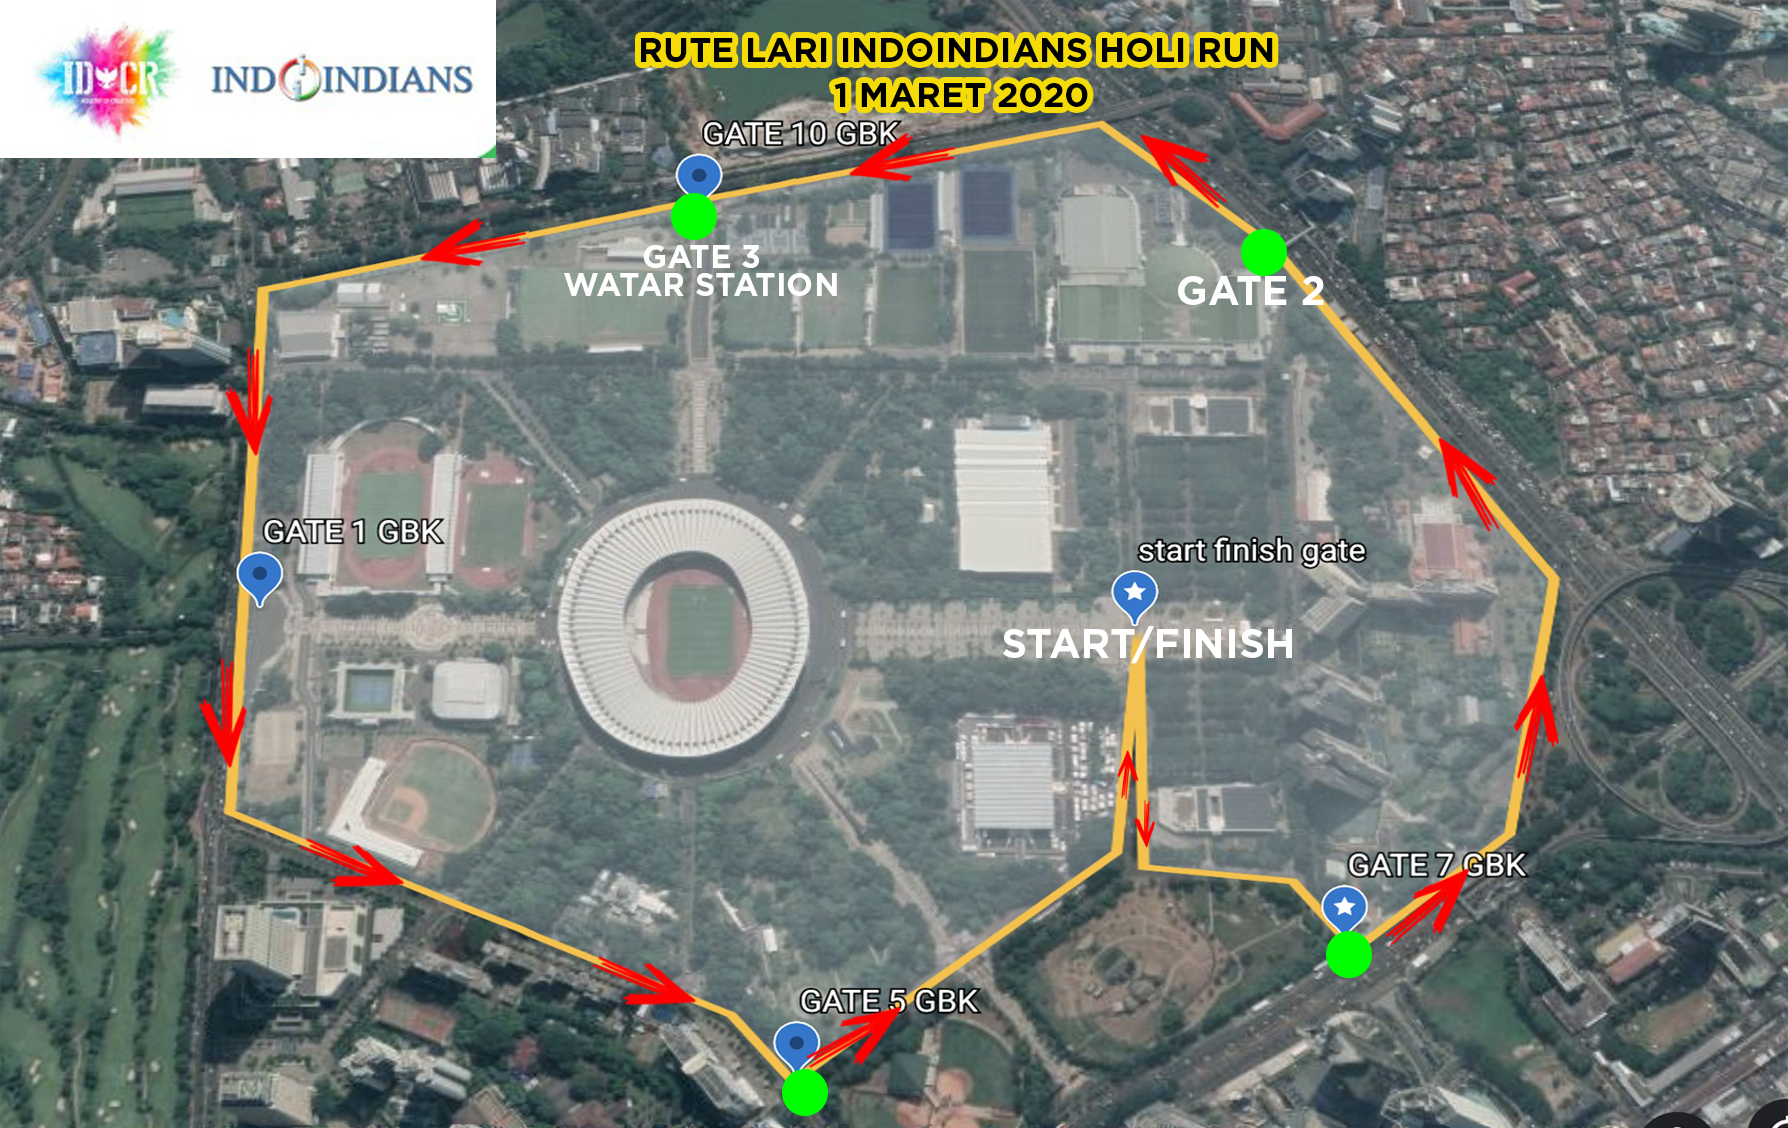 IDCR IndoIndians Holi Color Run 1st March Route